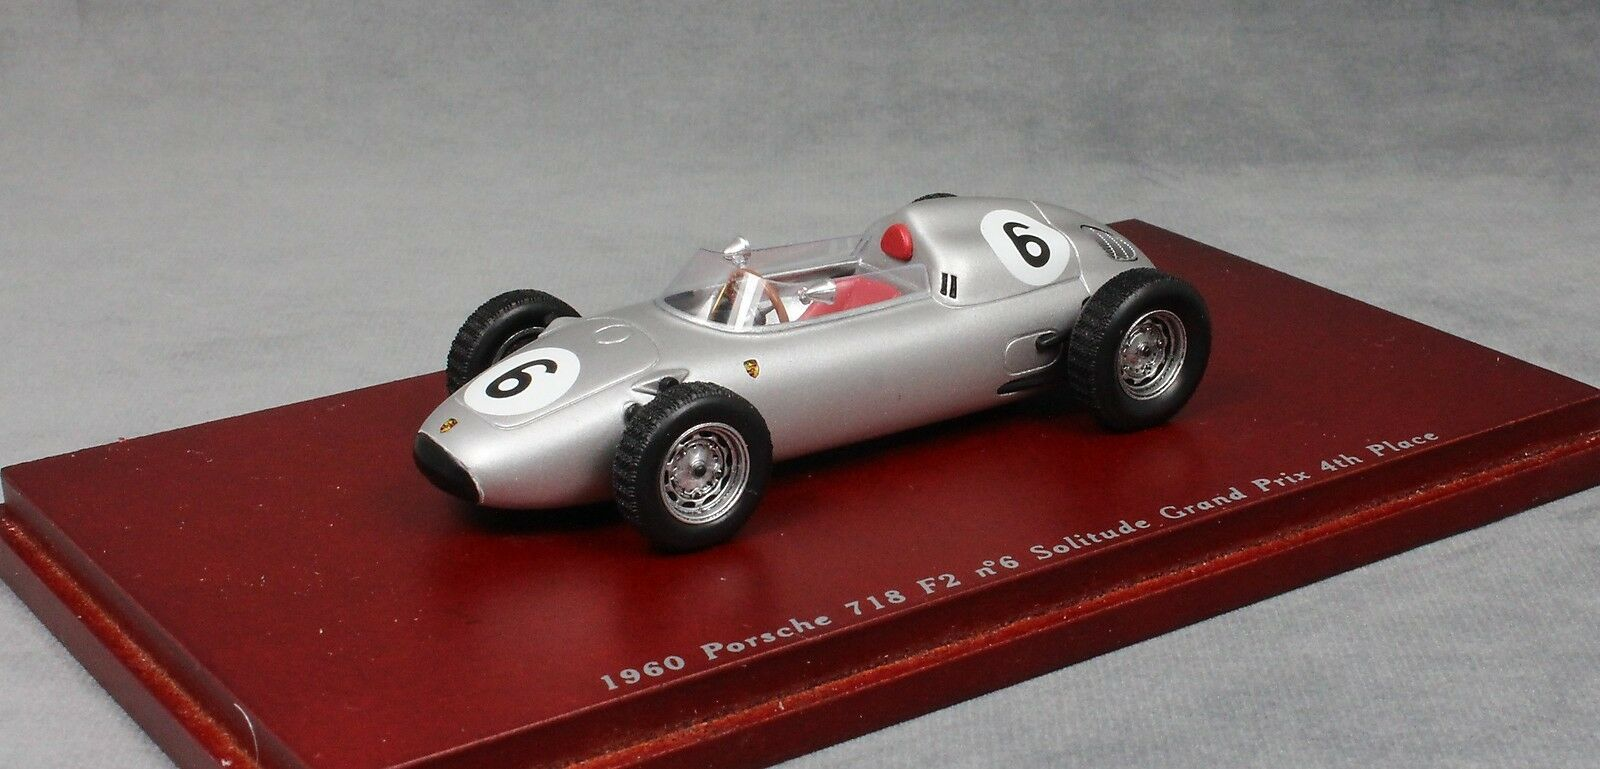 Truescale Porsche 718 Solitude F2 Grand Prix 1960 Graham Hill TSM114310 1 43 NEW